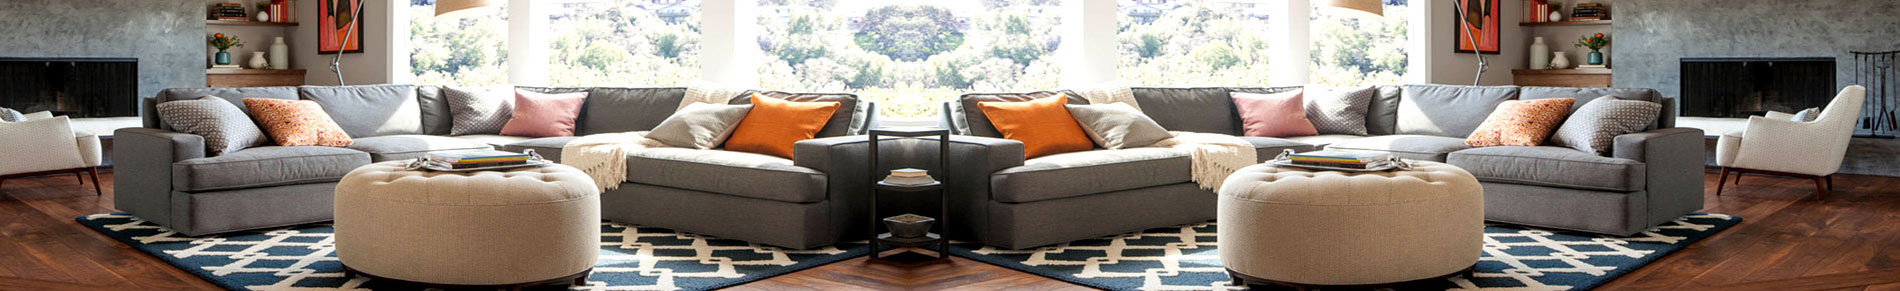 Carpet Tiles Supplier In Jaipur Bangalore And Hyderabad In India